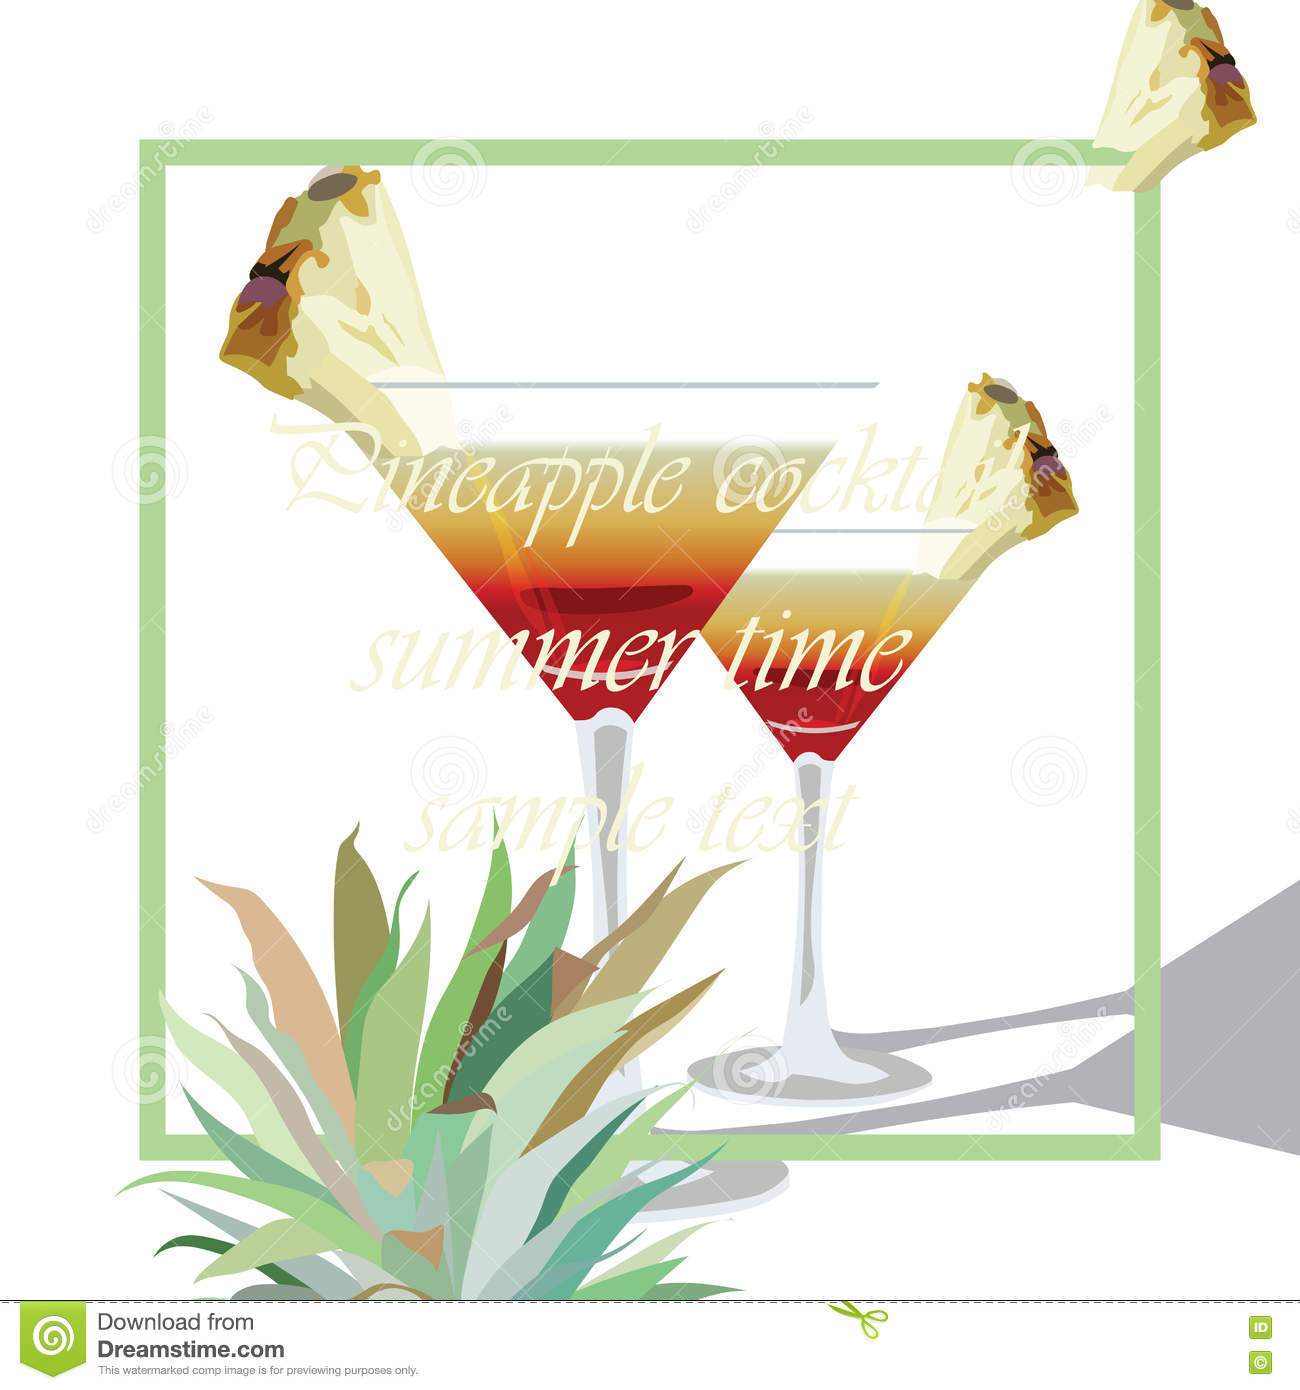 Mocktail cartoons illustrations vector stock images for Cocktail 51